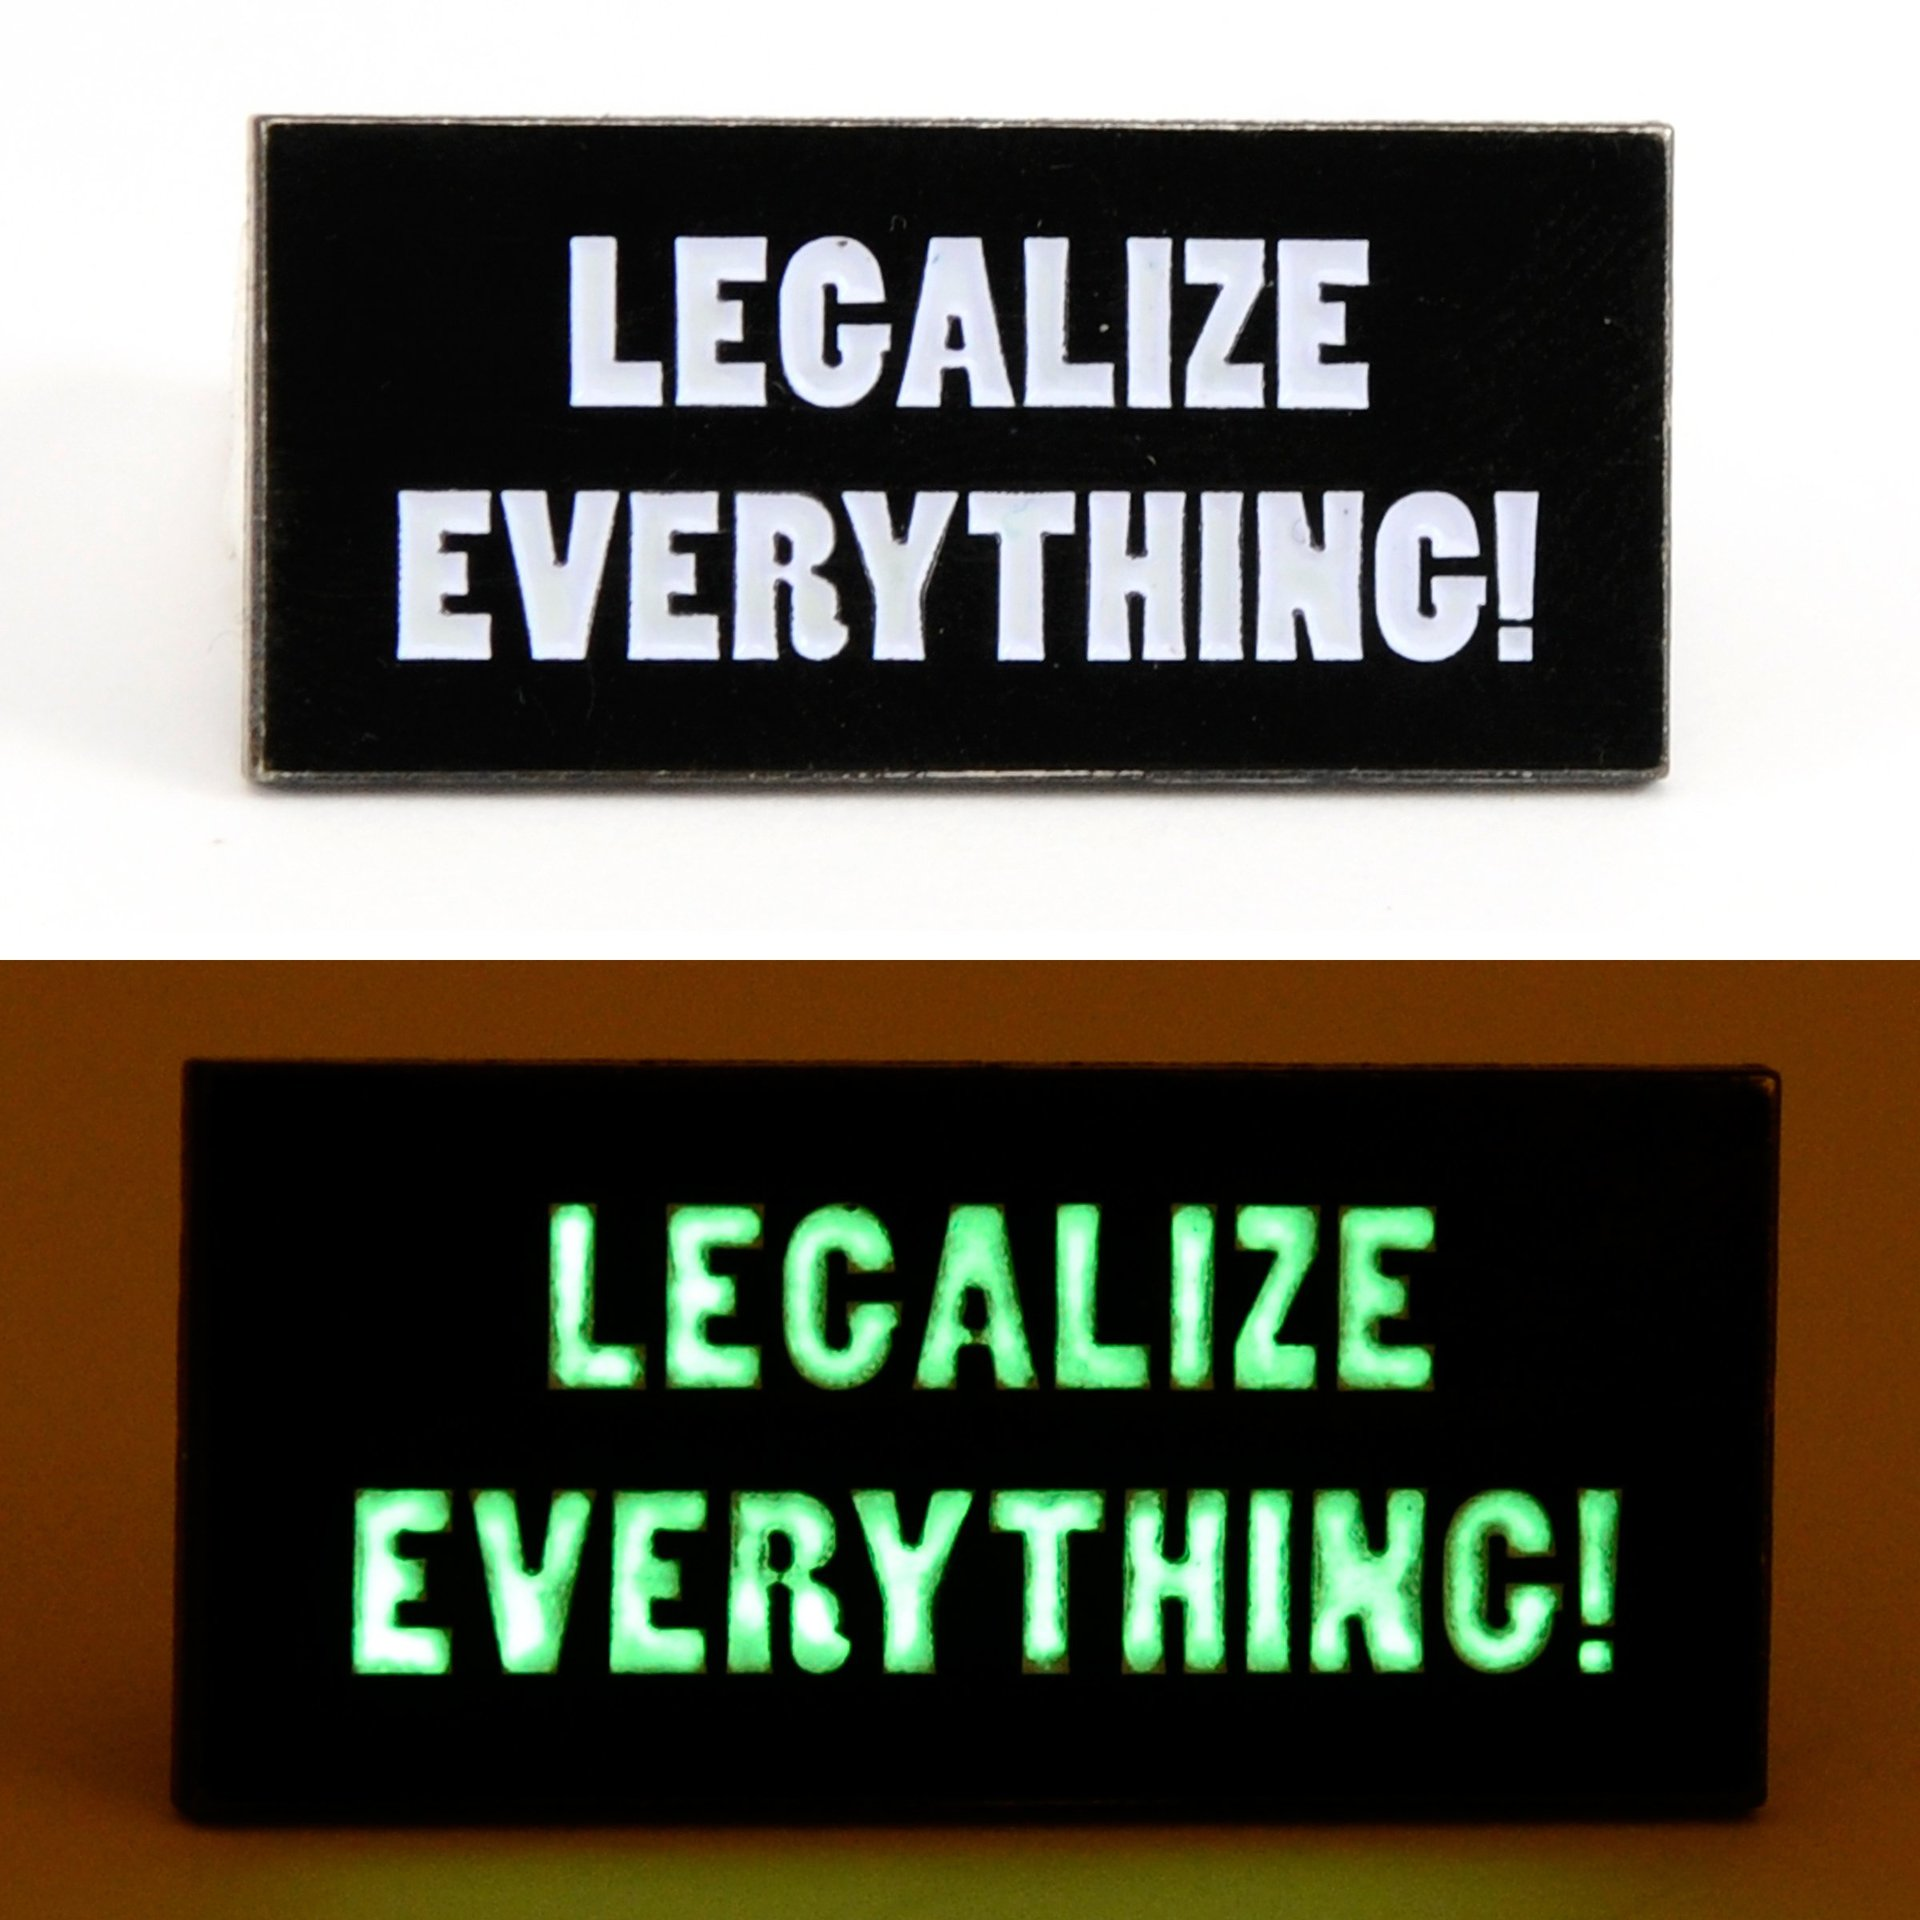 Glow in the Dark Legalize Everthing! Pin